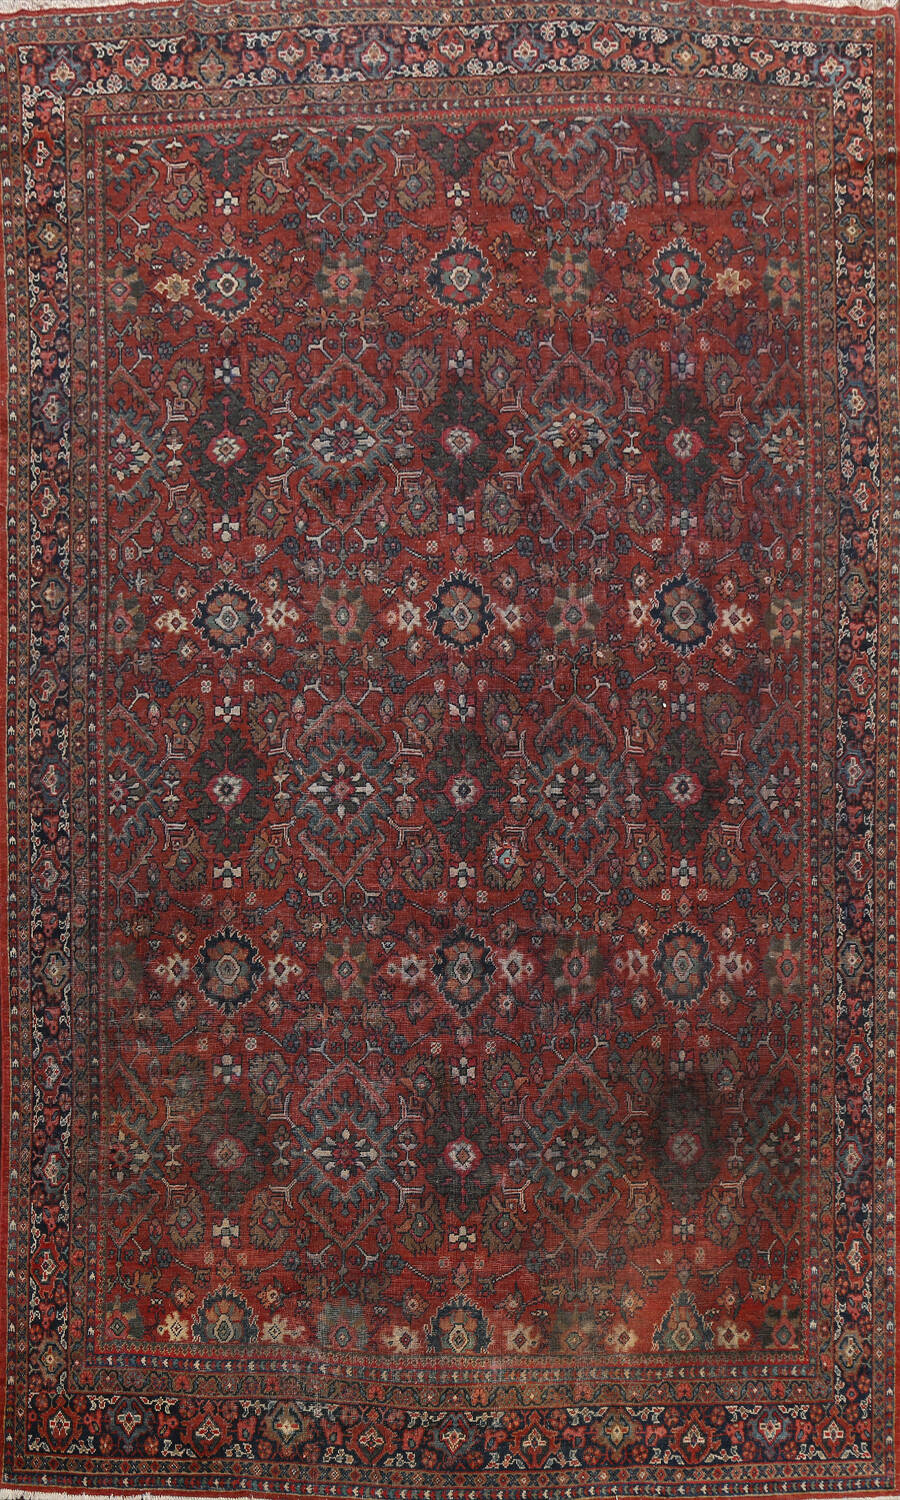 Pre-1900 Antique All-Over Mahal Persian Area Rug 9x13 image 1